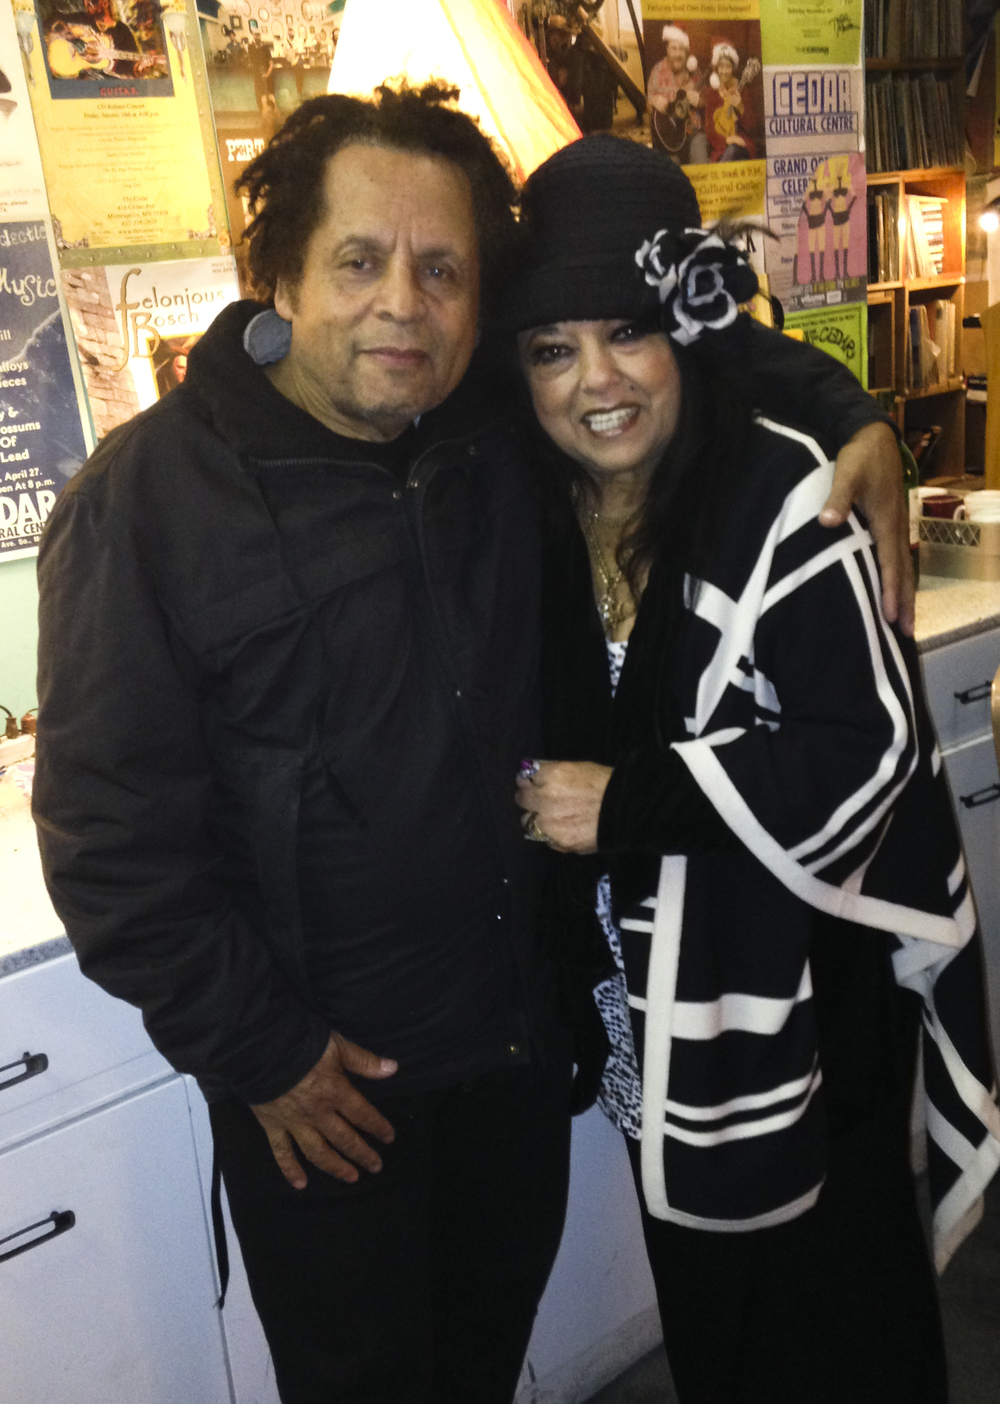 Garland Jeffreys and Marilyn Percansky / Backstage at The Cedar Cultural Center / Minneapolis, Minnesota / November 15th, 2013